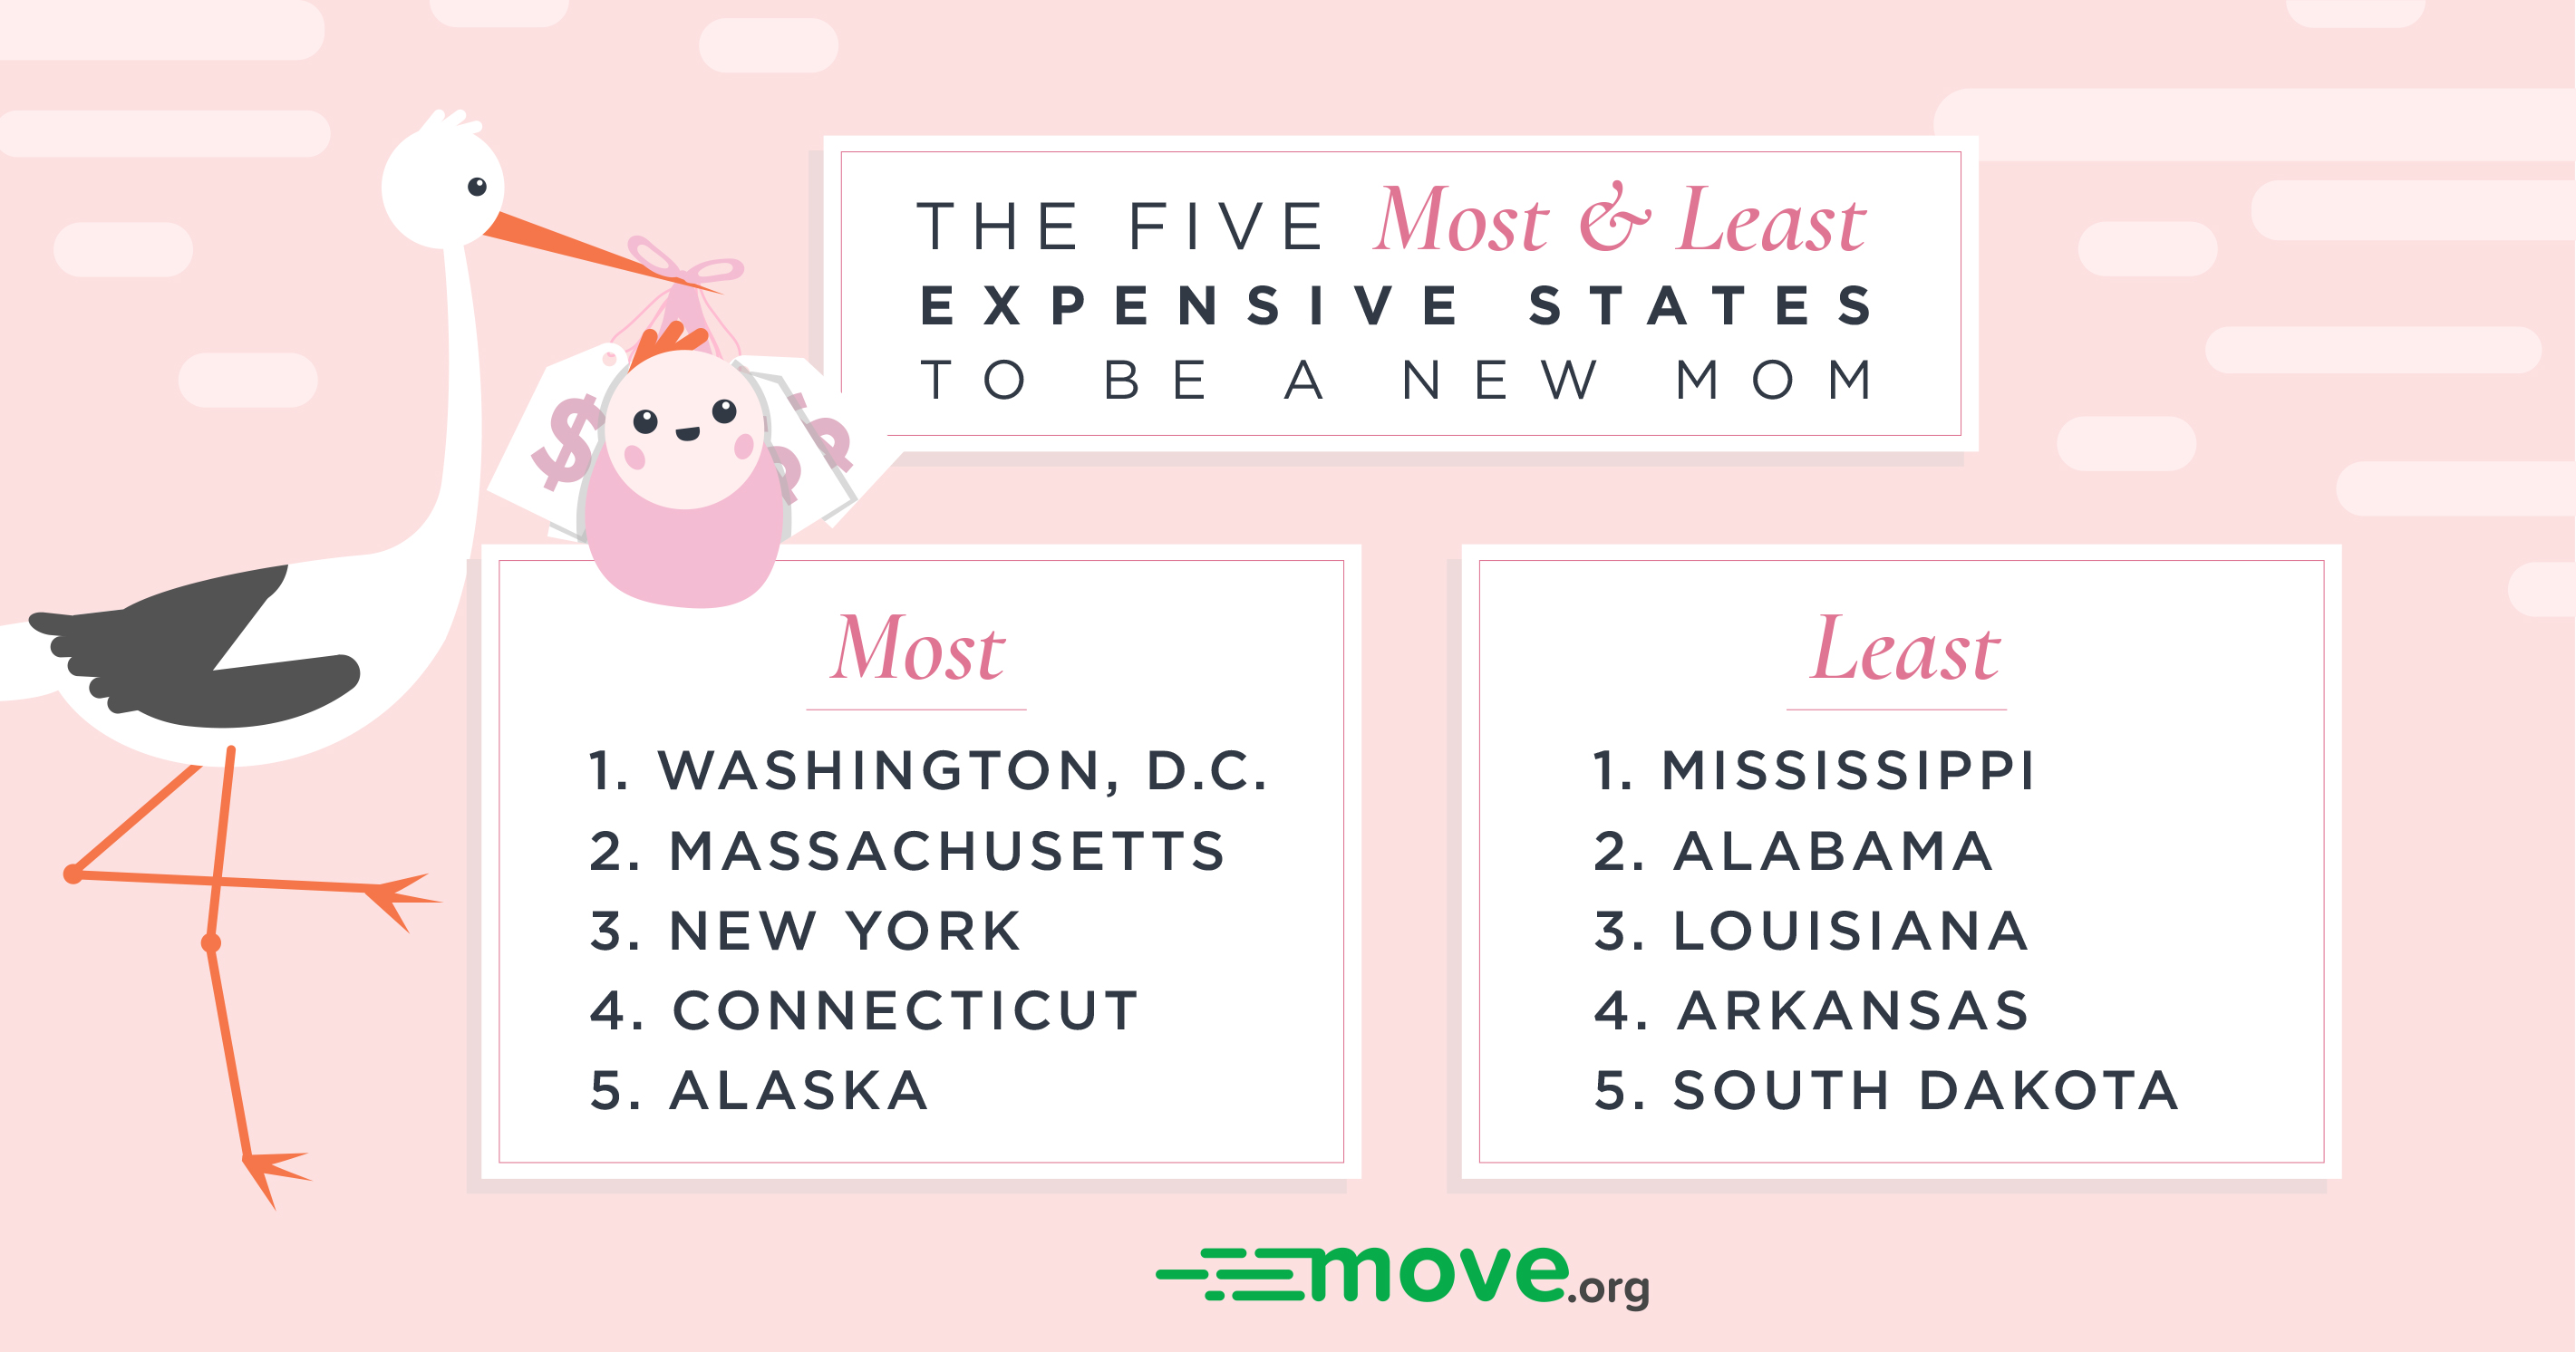 the five most and least expensive states to be a new mom